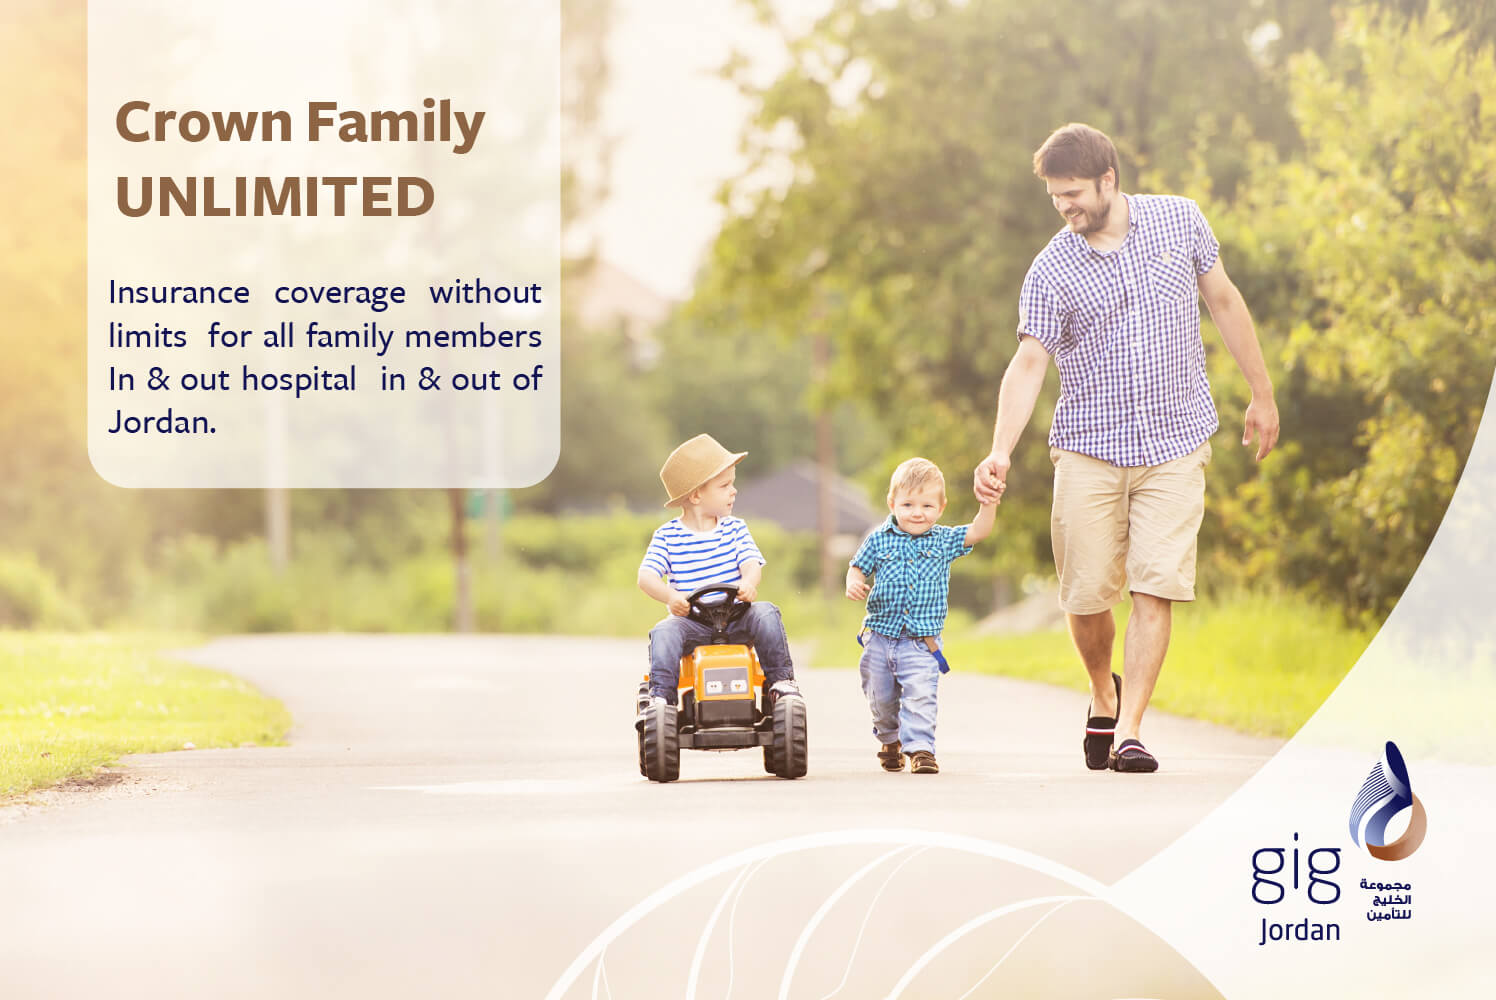 Crown Family Unlimited